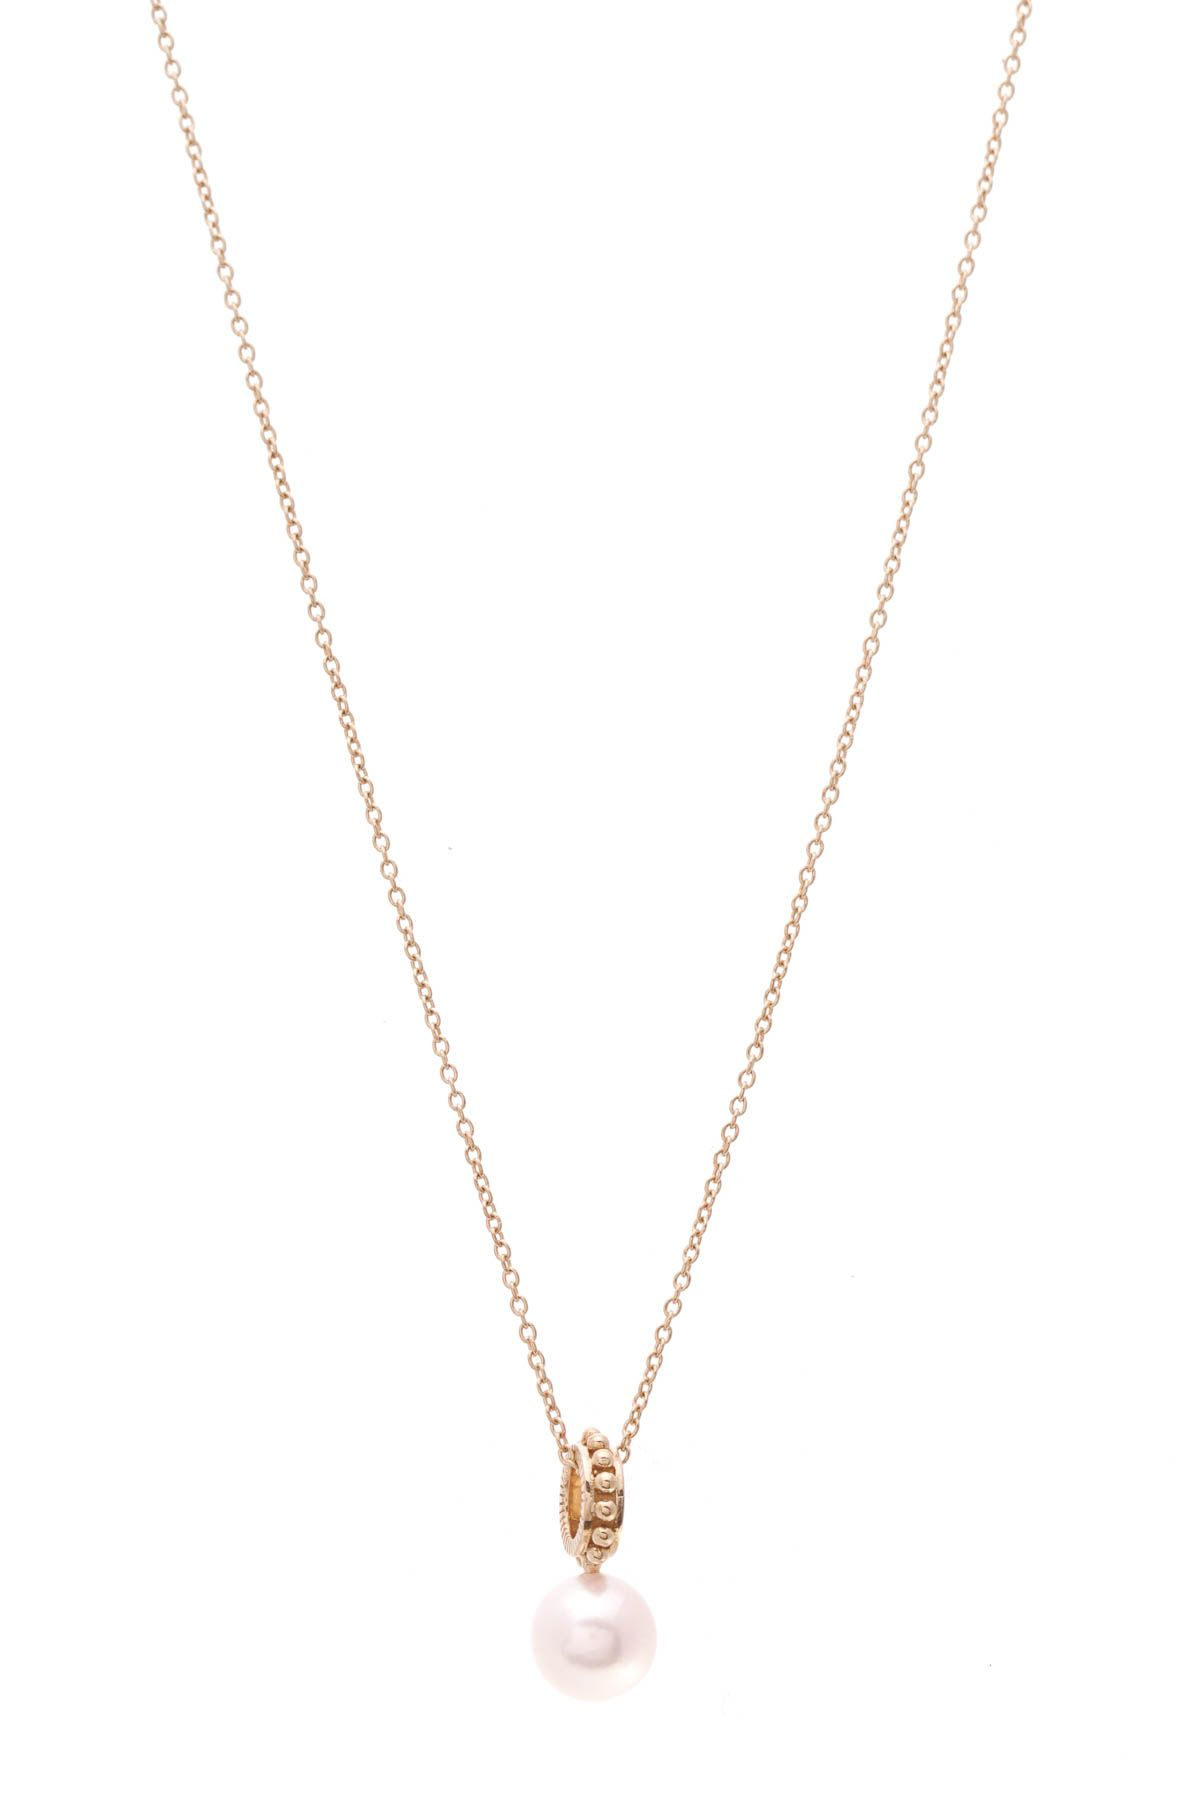 e3c511d86 Iridesse Pearl Pendant Necklace - Gold in 2019   Accessorize and ...